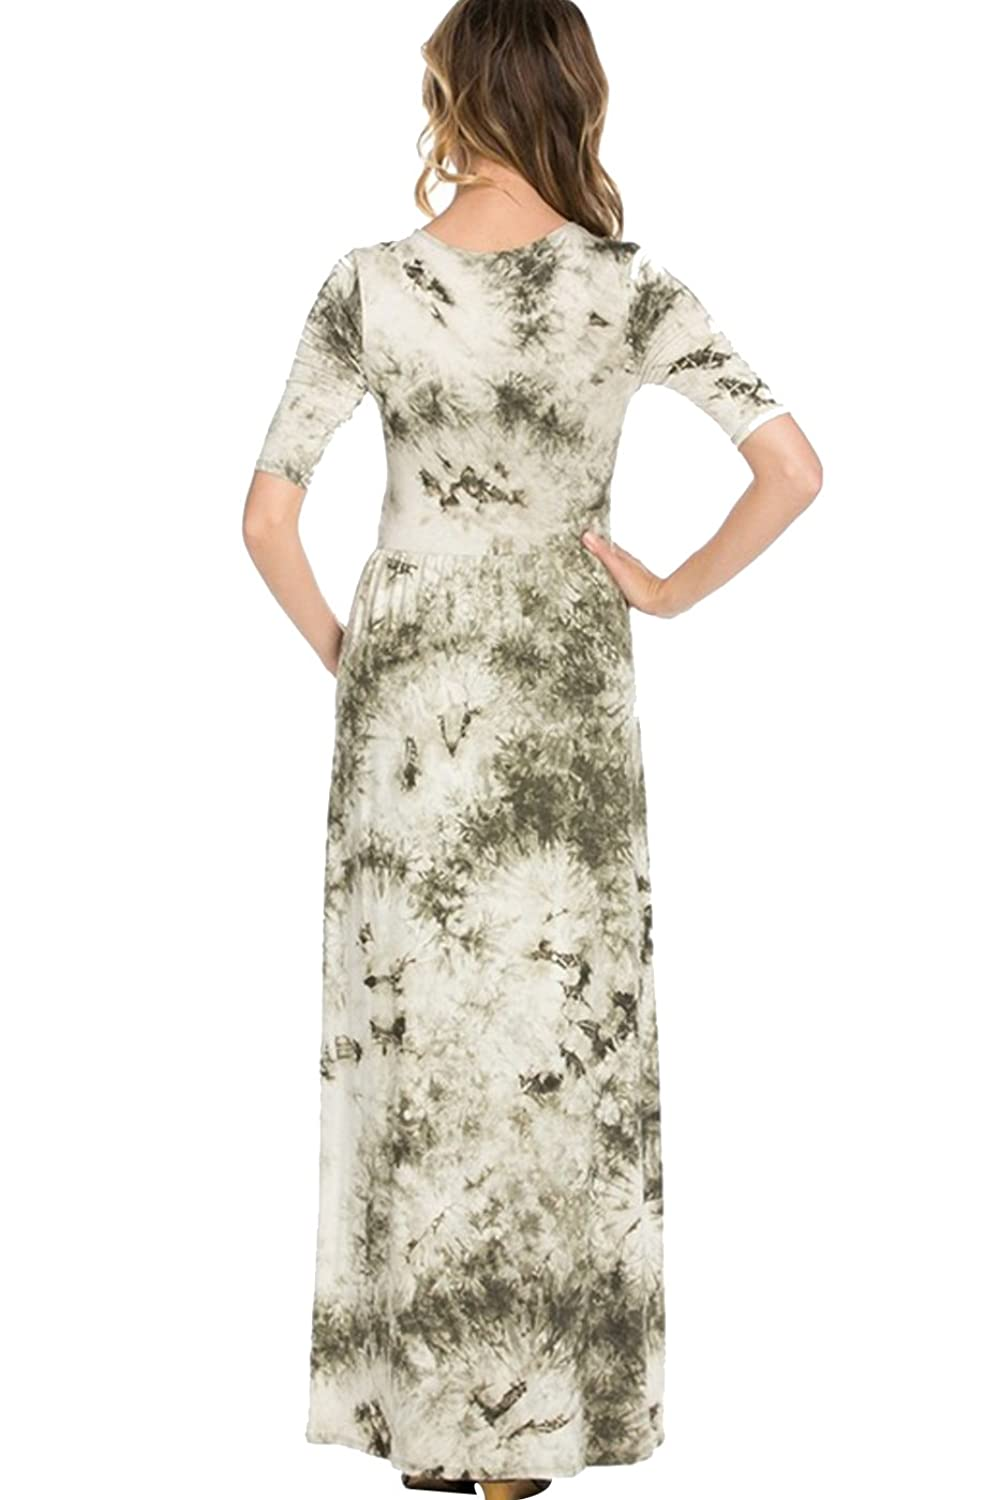 2LUV Women's Shortsleeve Tie Dye Maxi Dress Olive M (ADL-8211RS-A22)